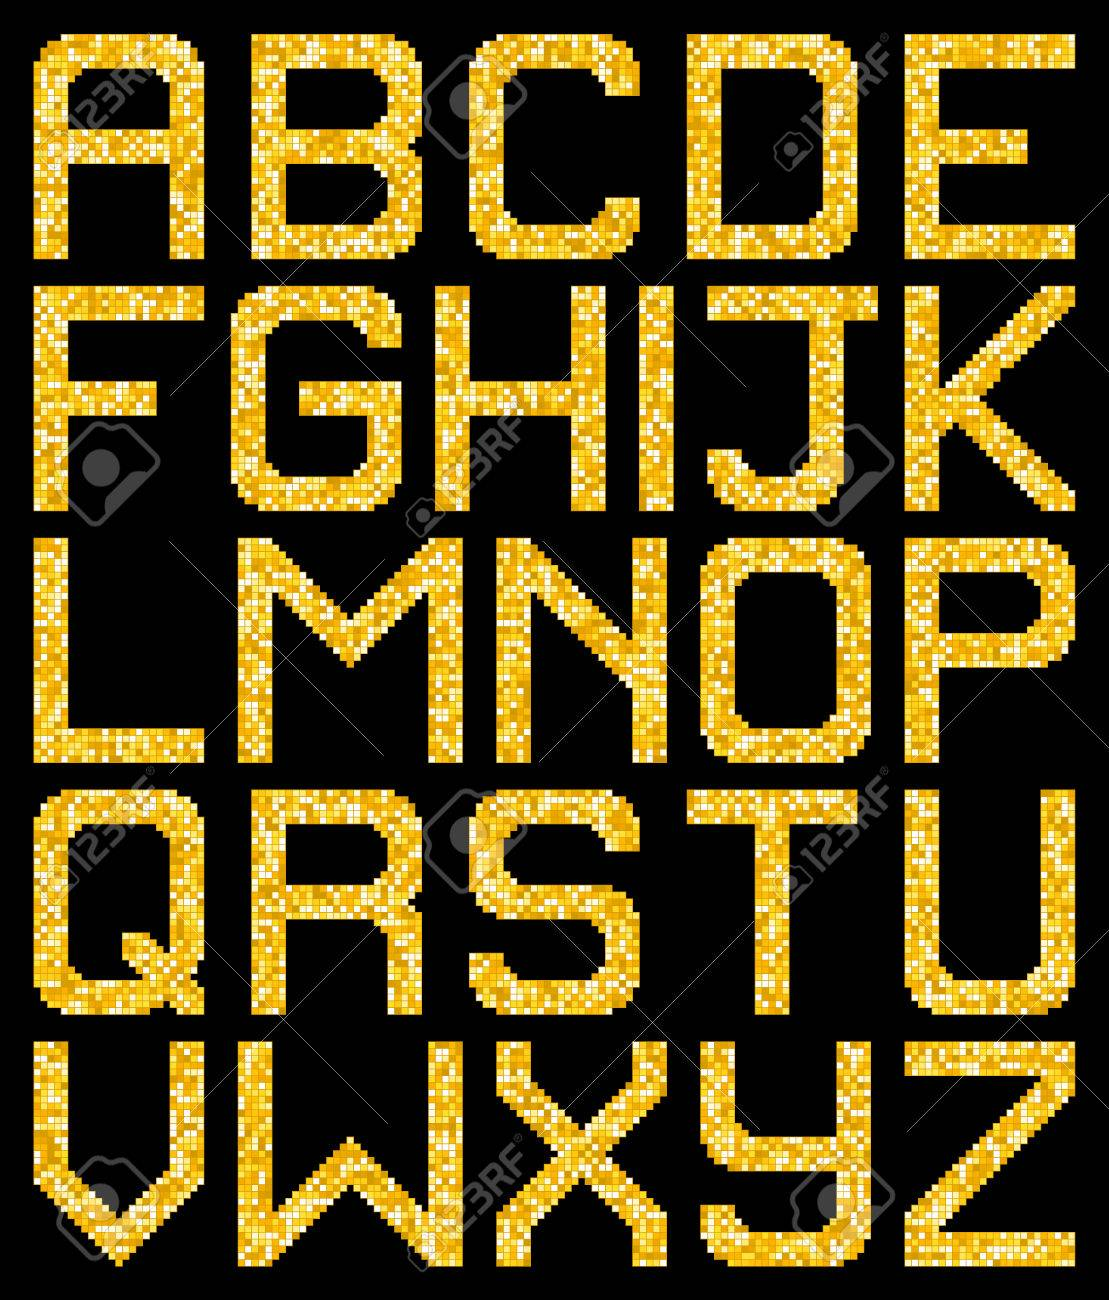 Pixel Gold Glitter A-Z Letters. EPS8 Vector without transparency or gradients. Each pixel left as a separate vector square for easy manipulation. Stock Vector - 50995615